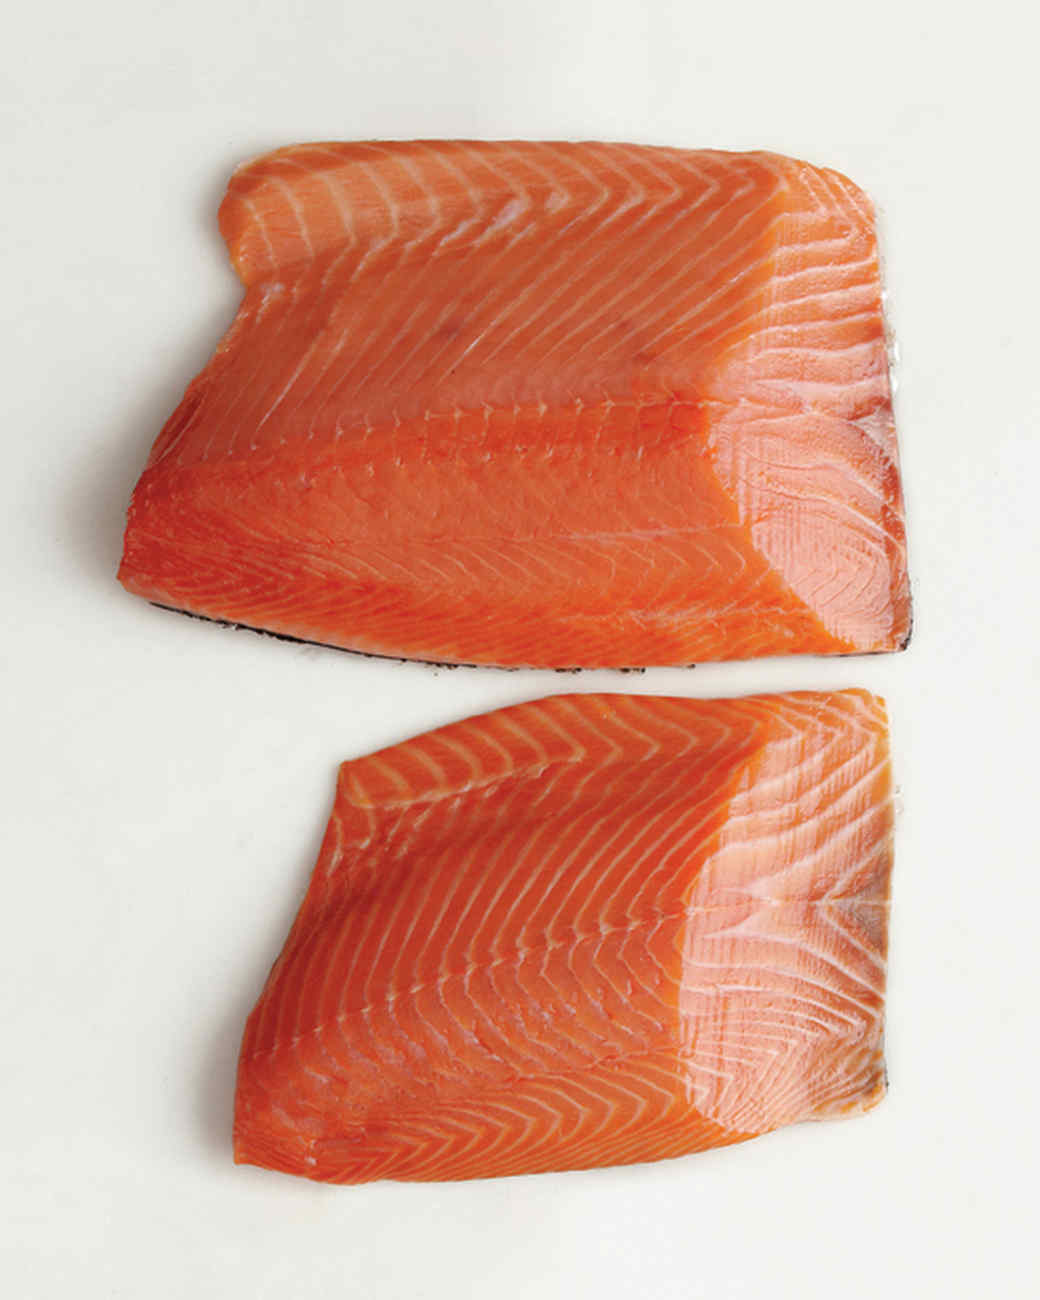 russ-and-daughters-smoked-fish-002-md108873.jpg